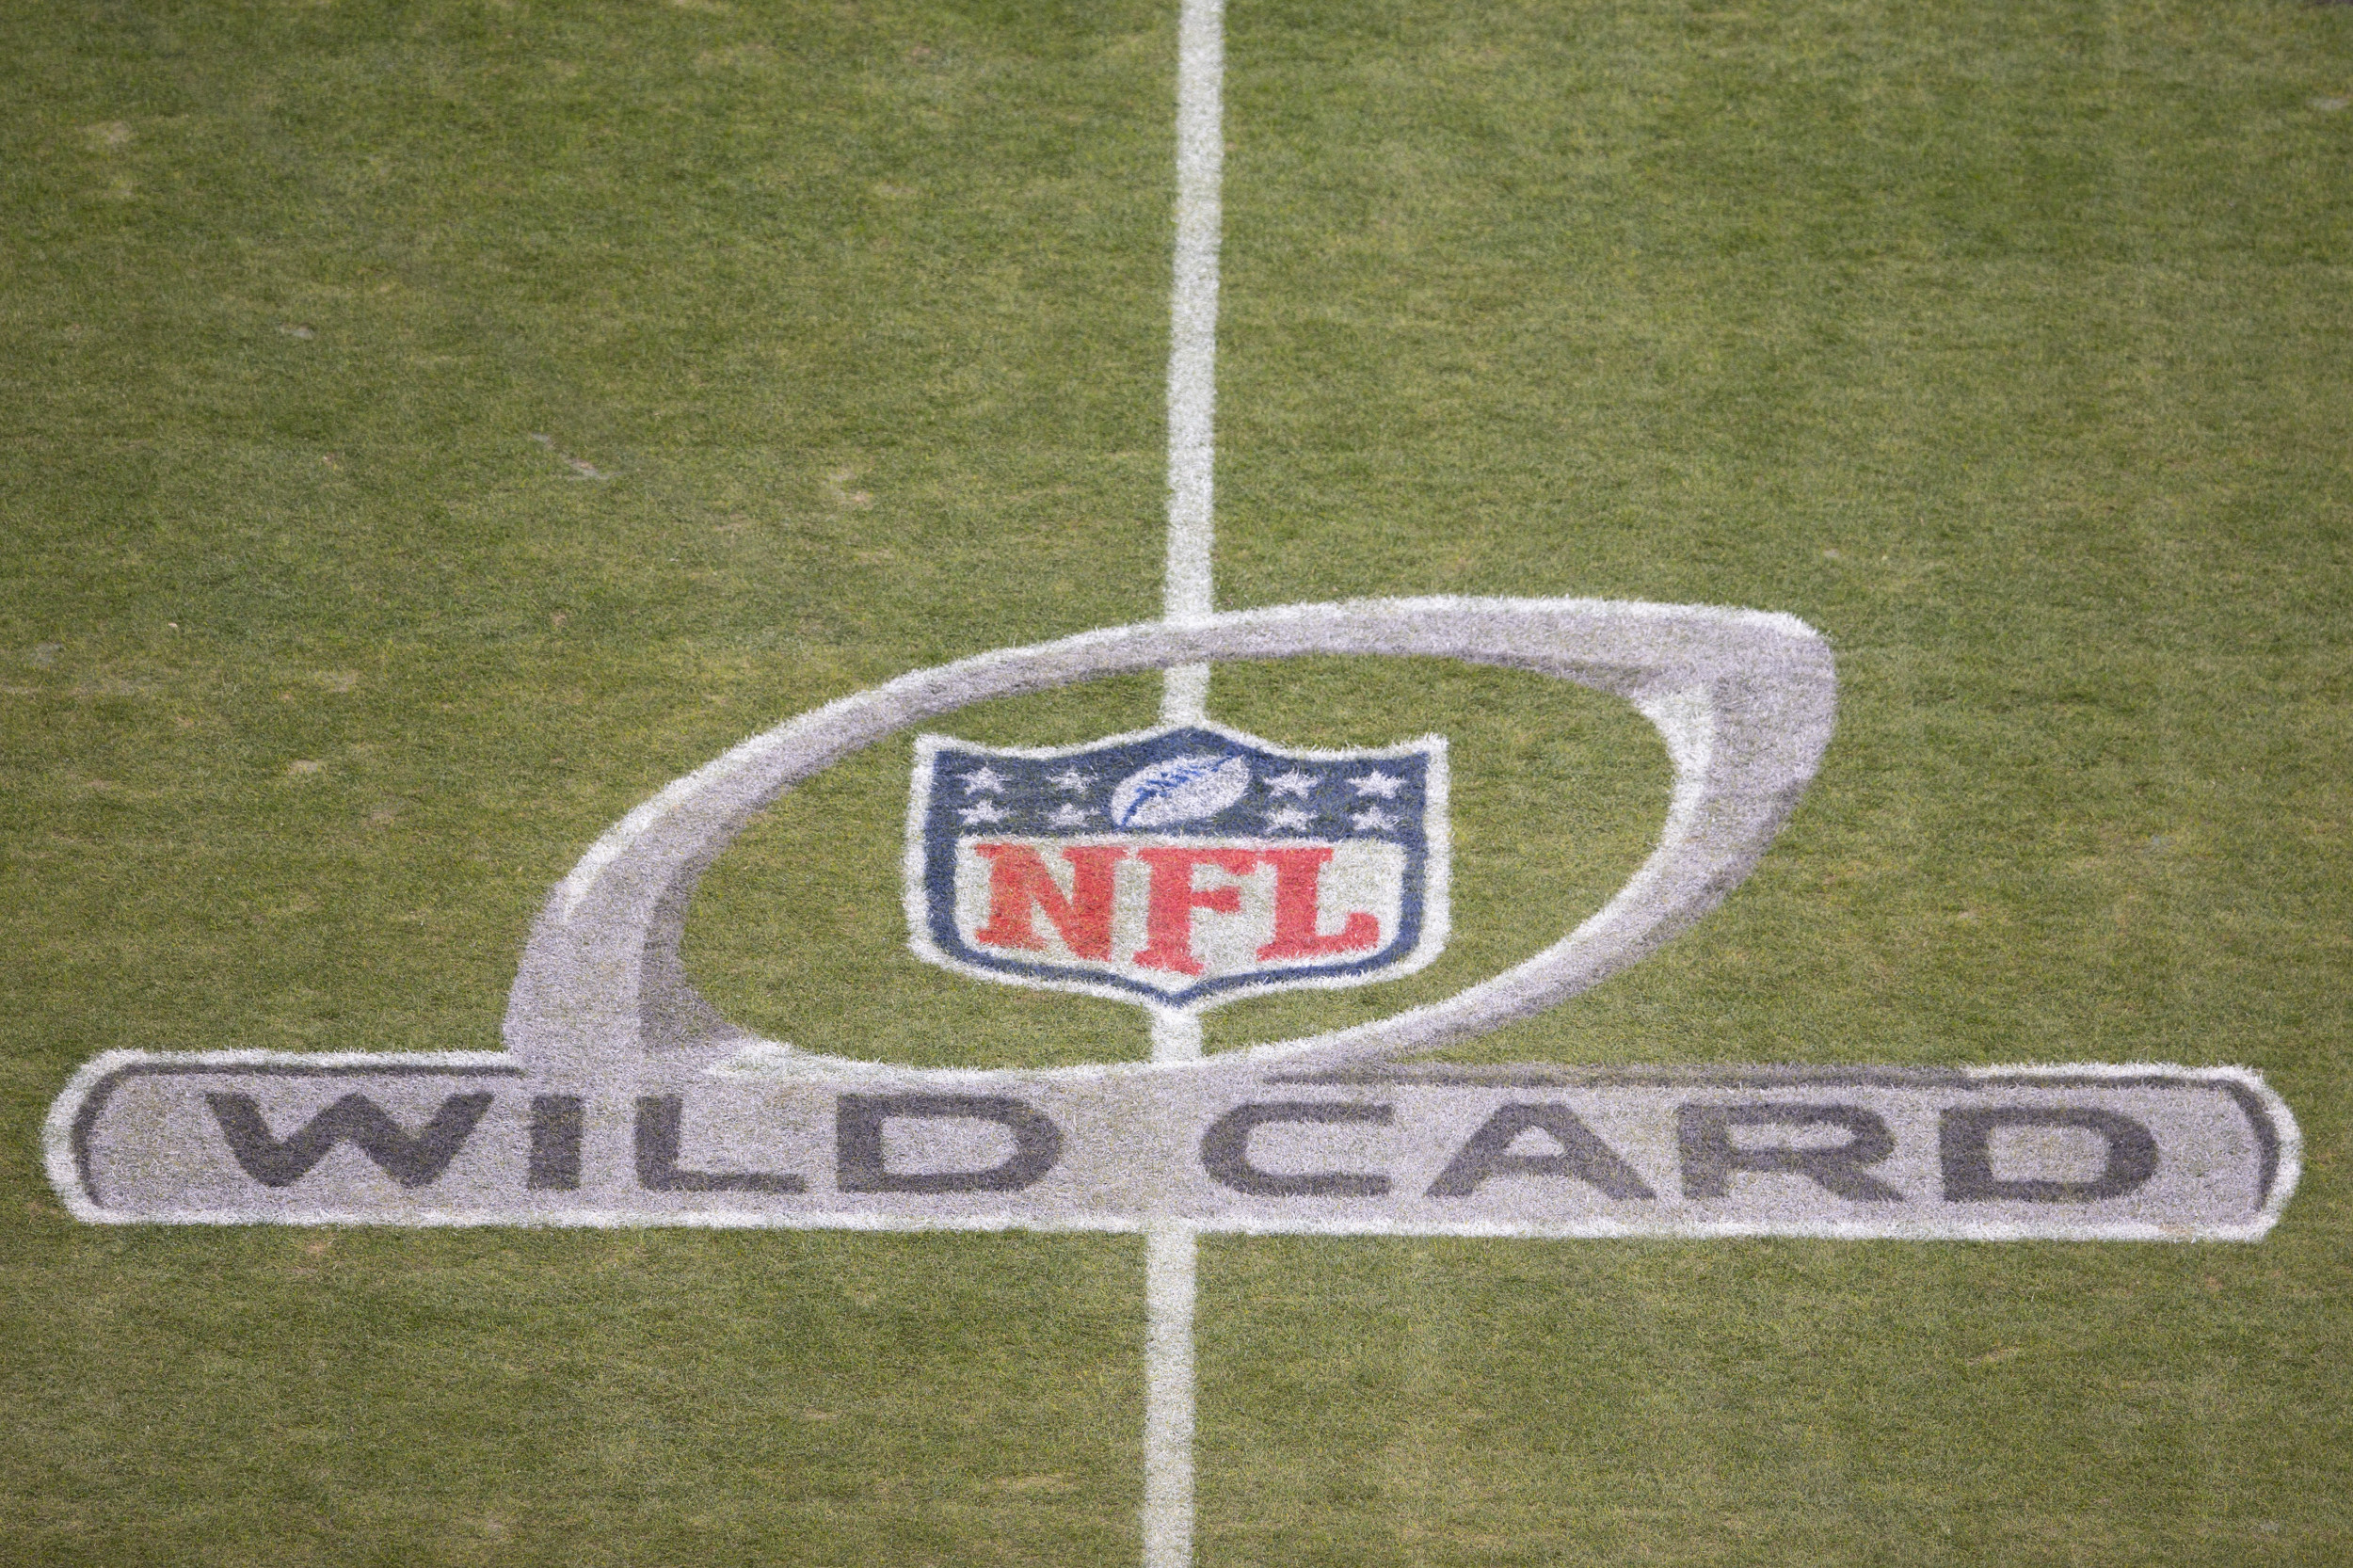 Nfl New Playoff Format Explained Number Of Teams Seeding Changes And Updated Schedule